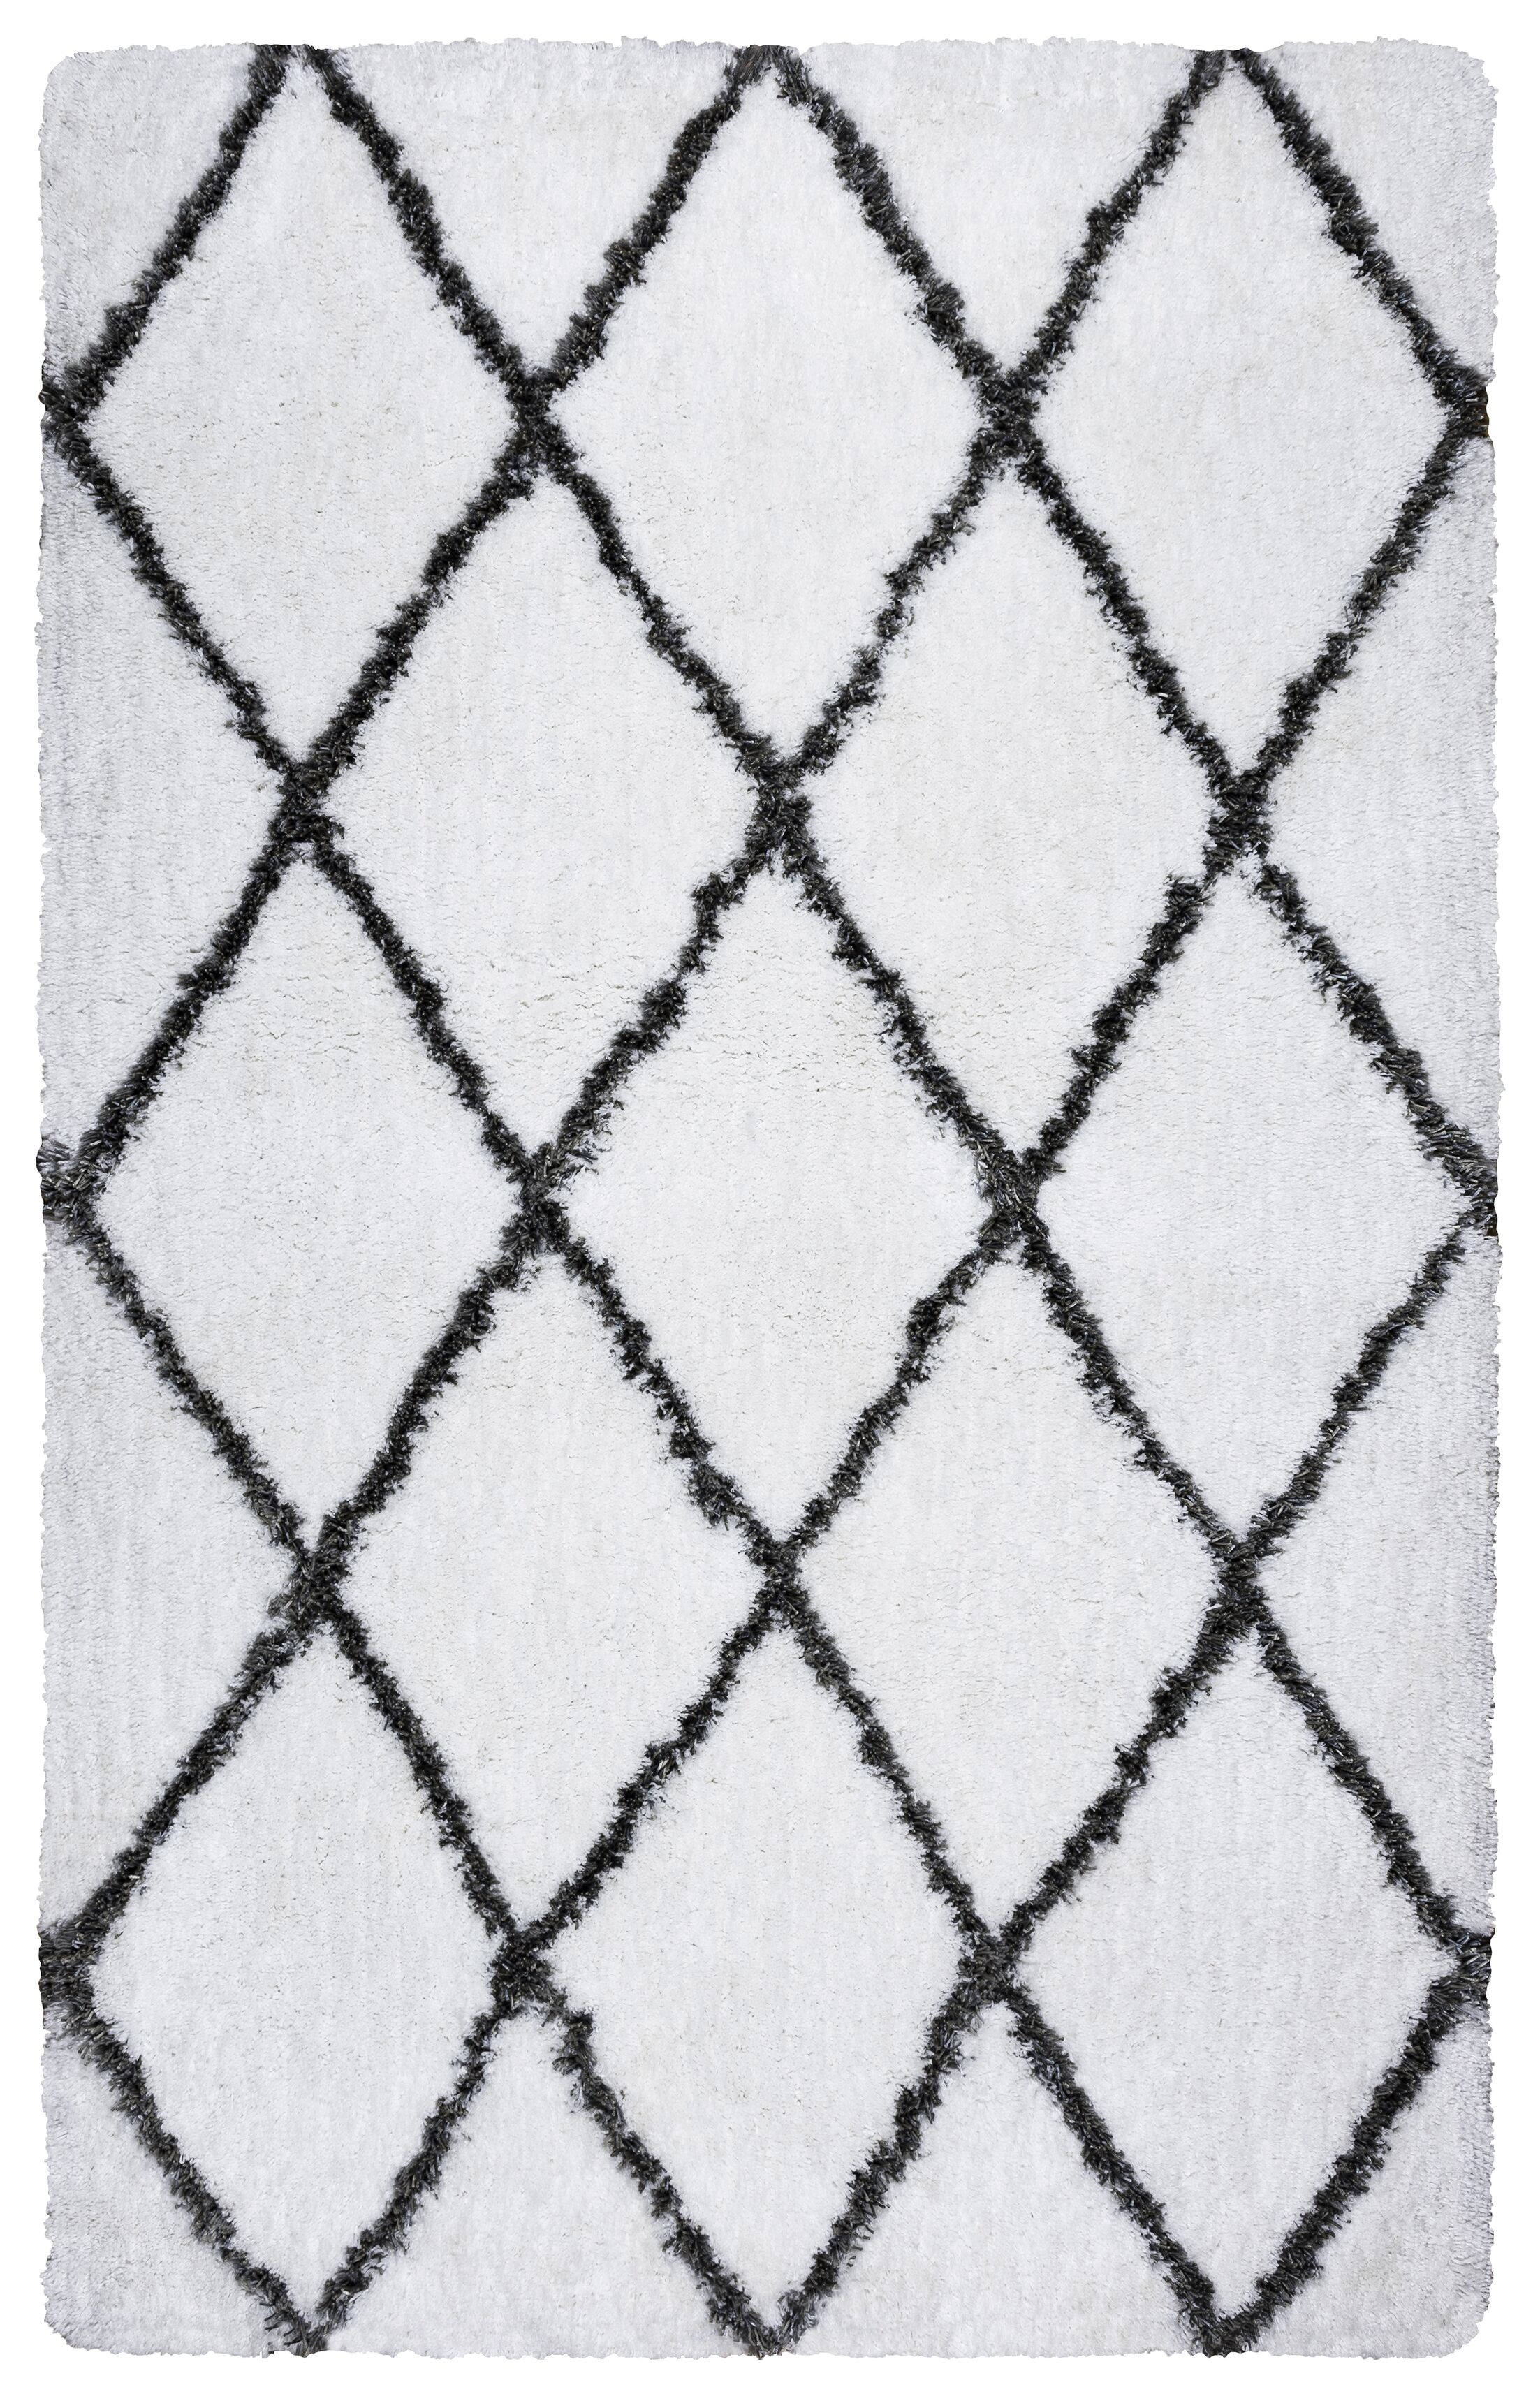 Beesley Hand-Tufted Bright White/Gray Indoor/Outdoor Area Rug Size: Rectangle 5' x 7'6